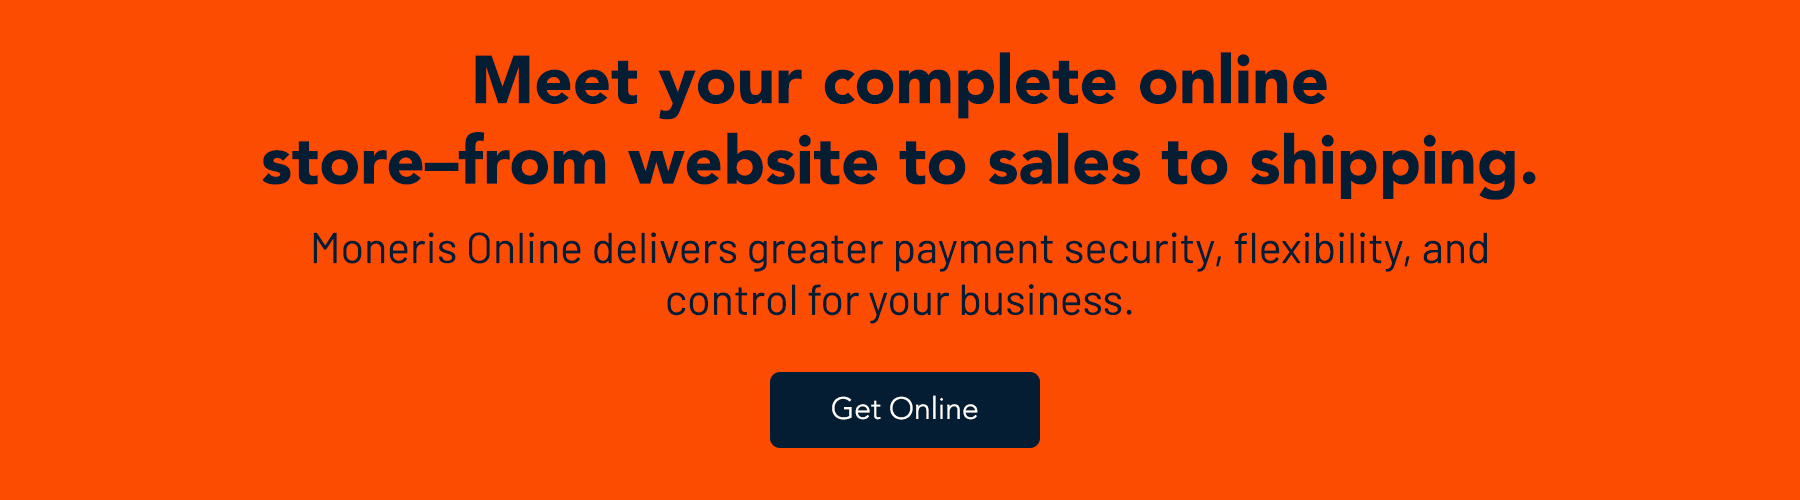 Meet your complete online store-from website to sales to shipping. Moneris Online delivers greater payment security, flexibility, and control for your business.